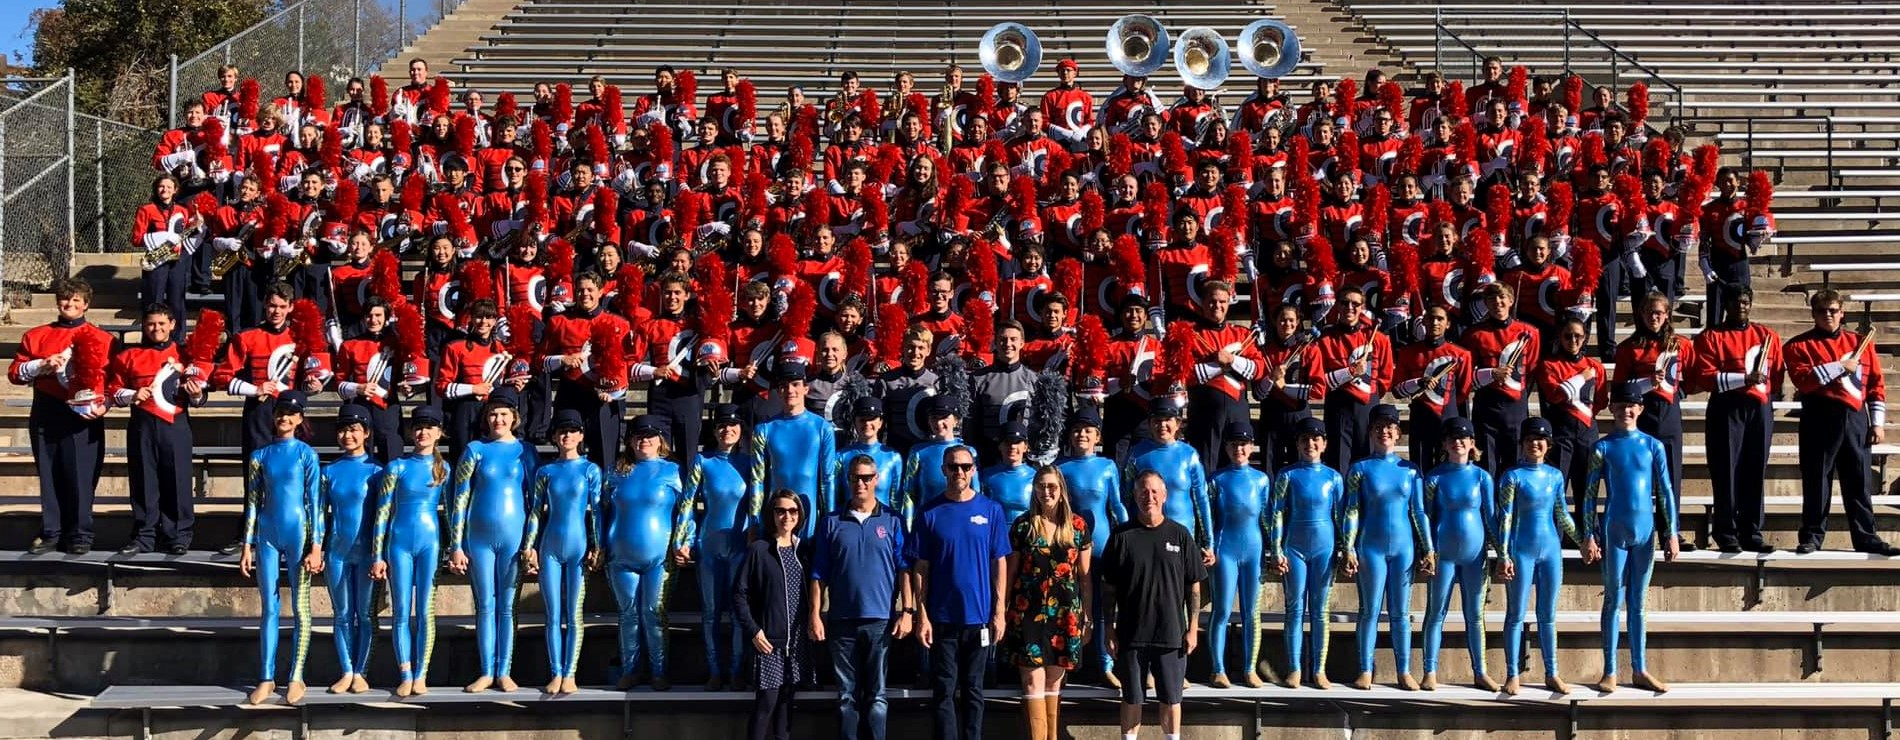 CCHS Marching Band 2019